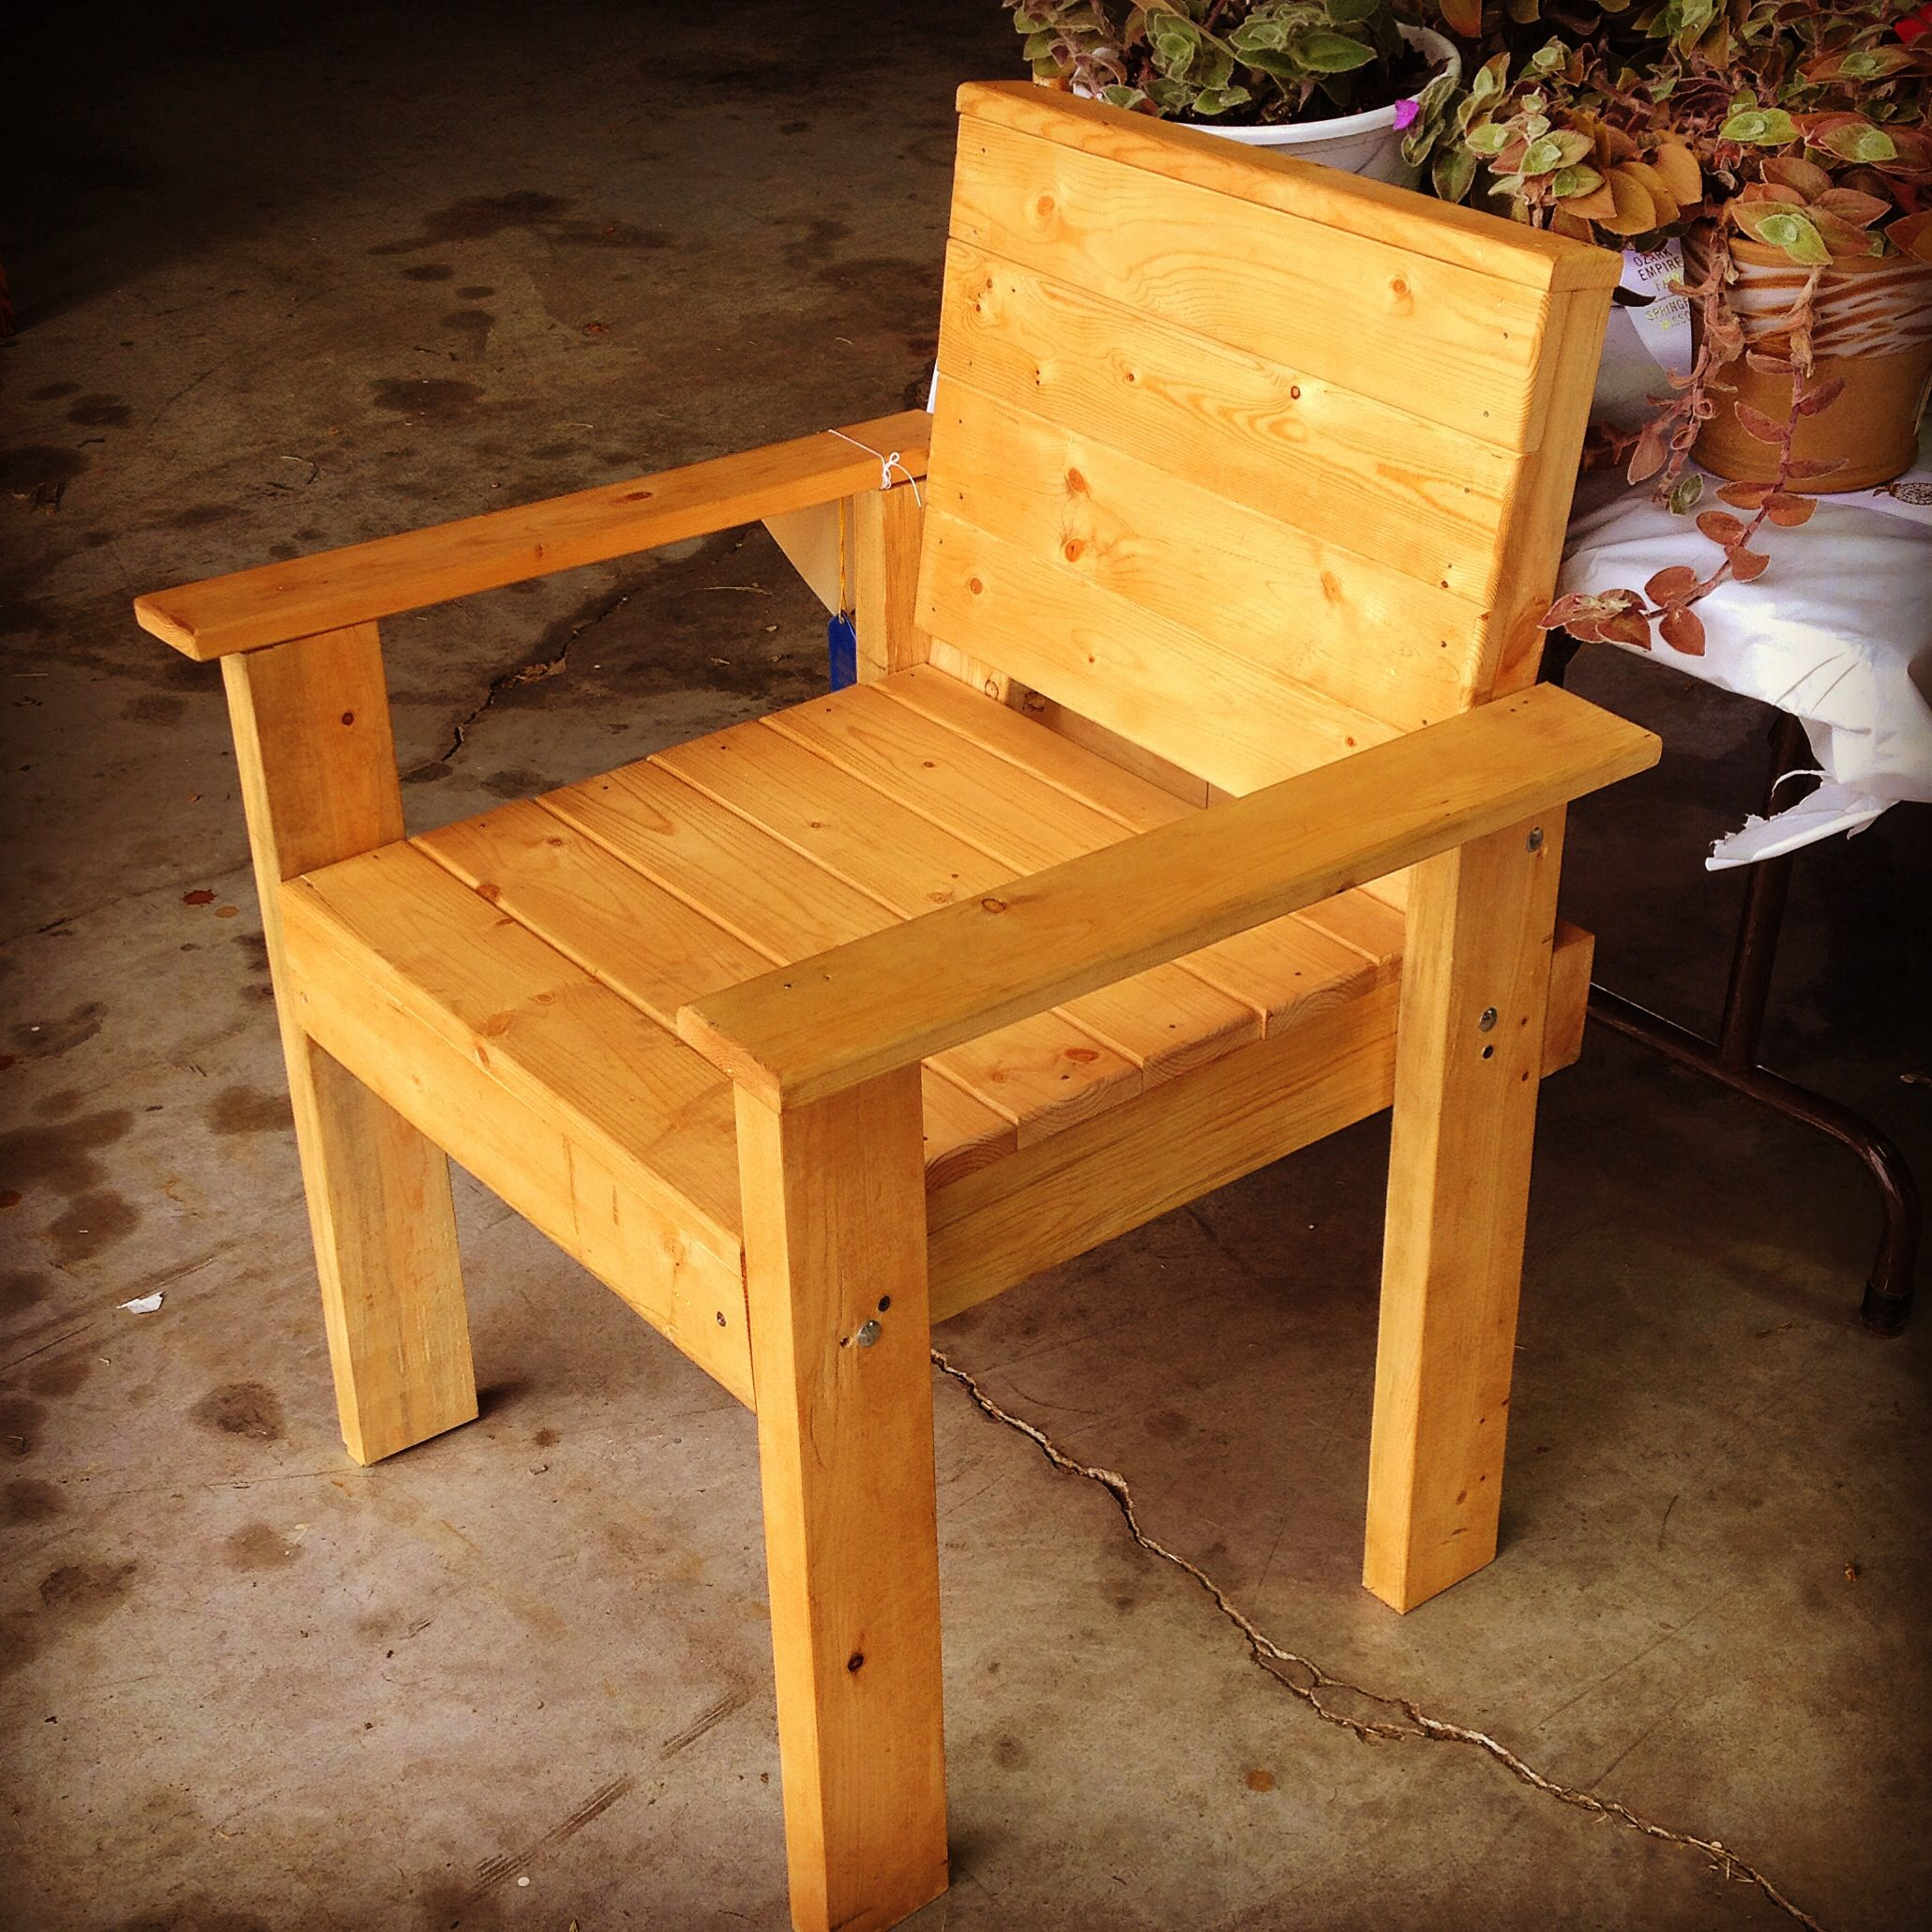 Simple chair | Pallet furniture instructions, Chair ...